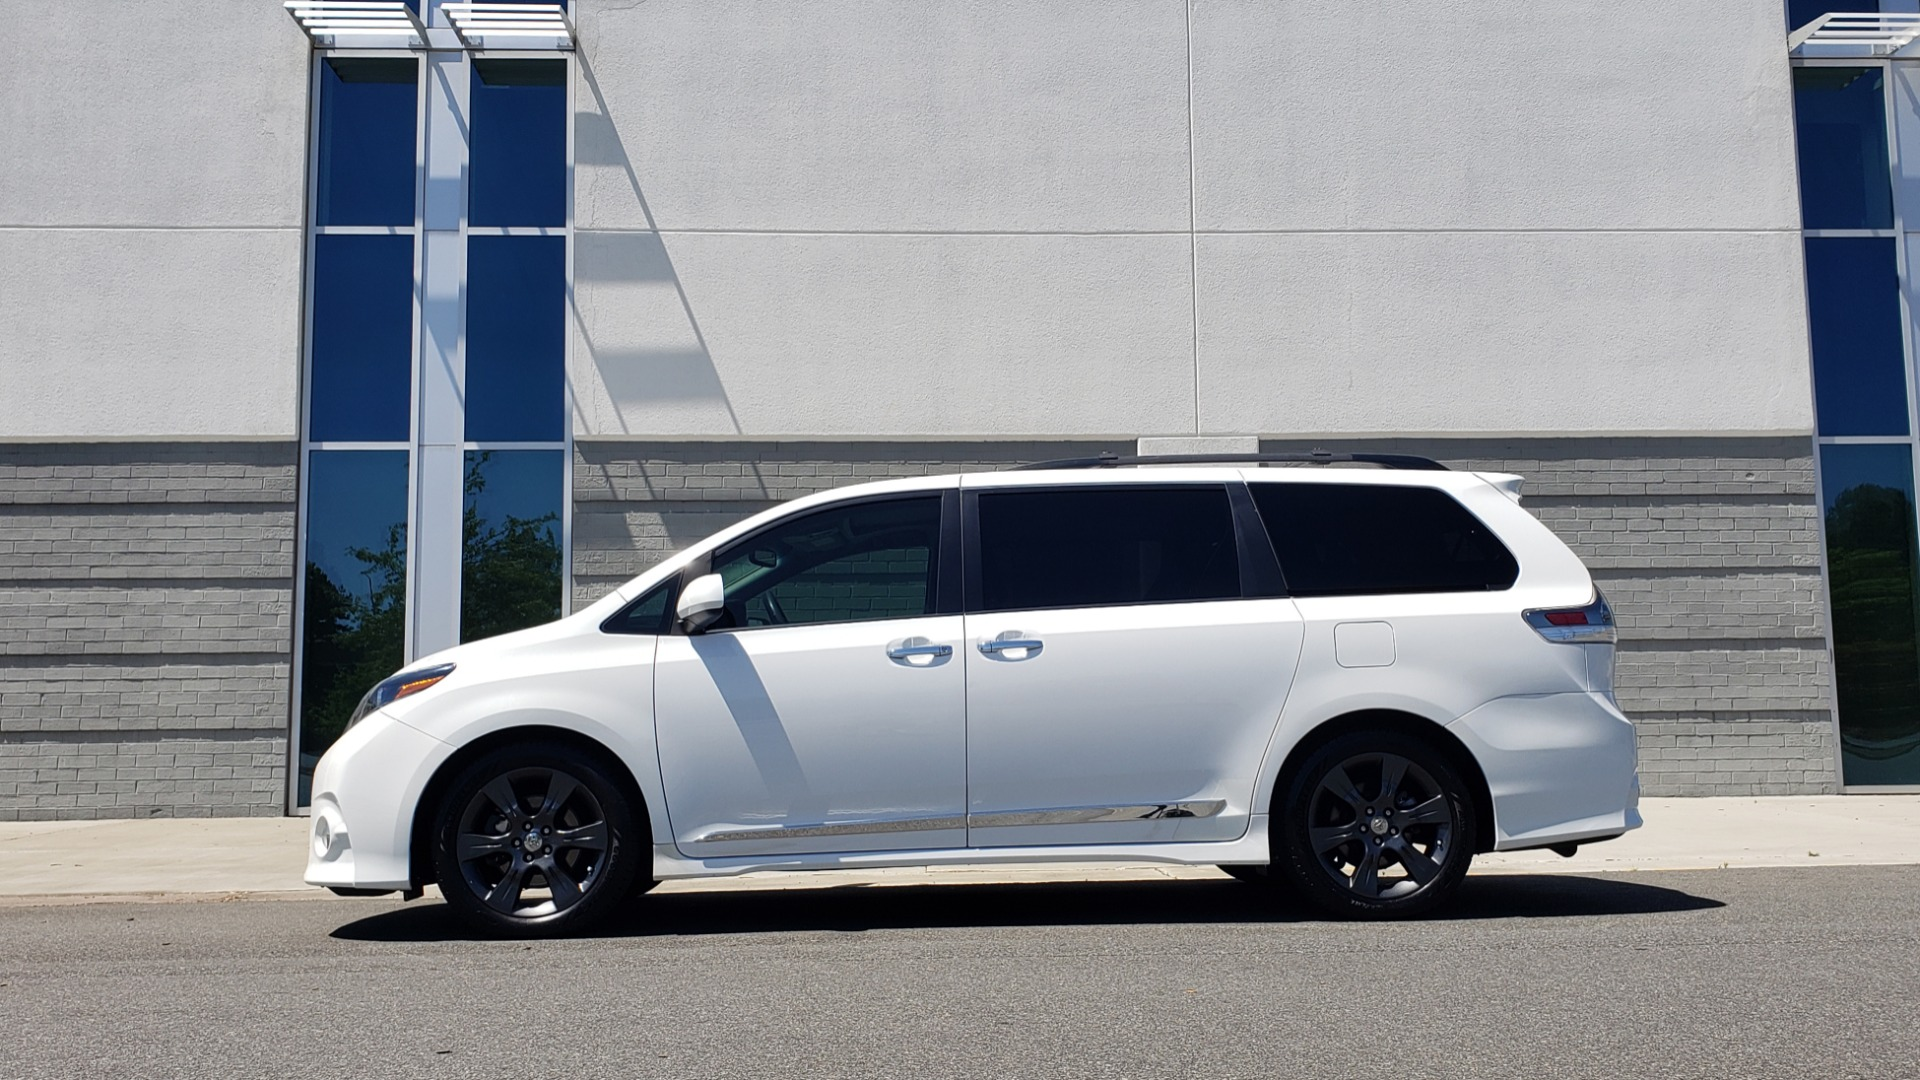 Used 2015 Toyota SIENNA SE 3.5L / FWD / 3-ROWS / 8-PASS / SUNROOF / DVD / REARVIEW for sale $21,995 at Formula Imports in Charlotte NC 28227 4